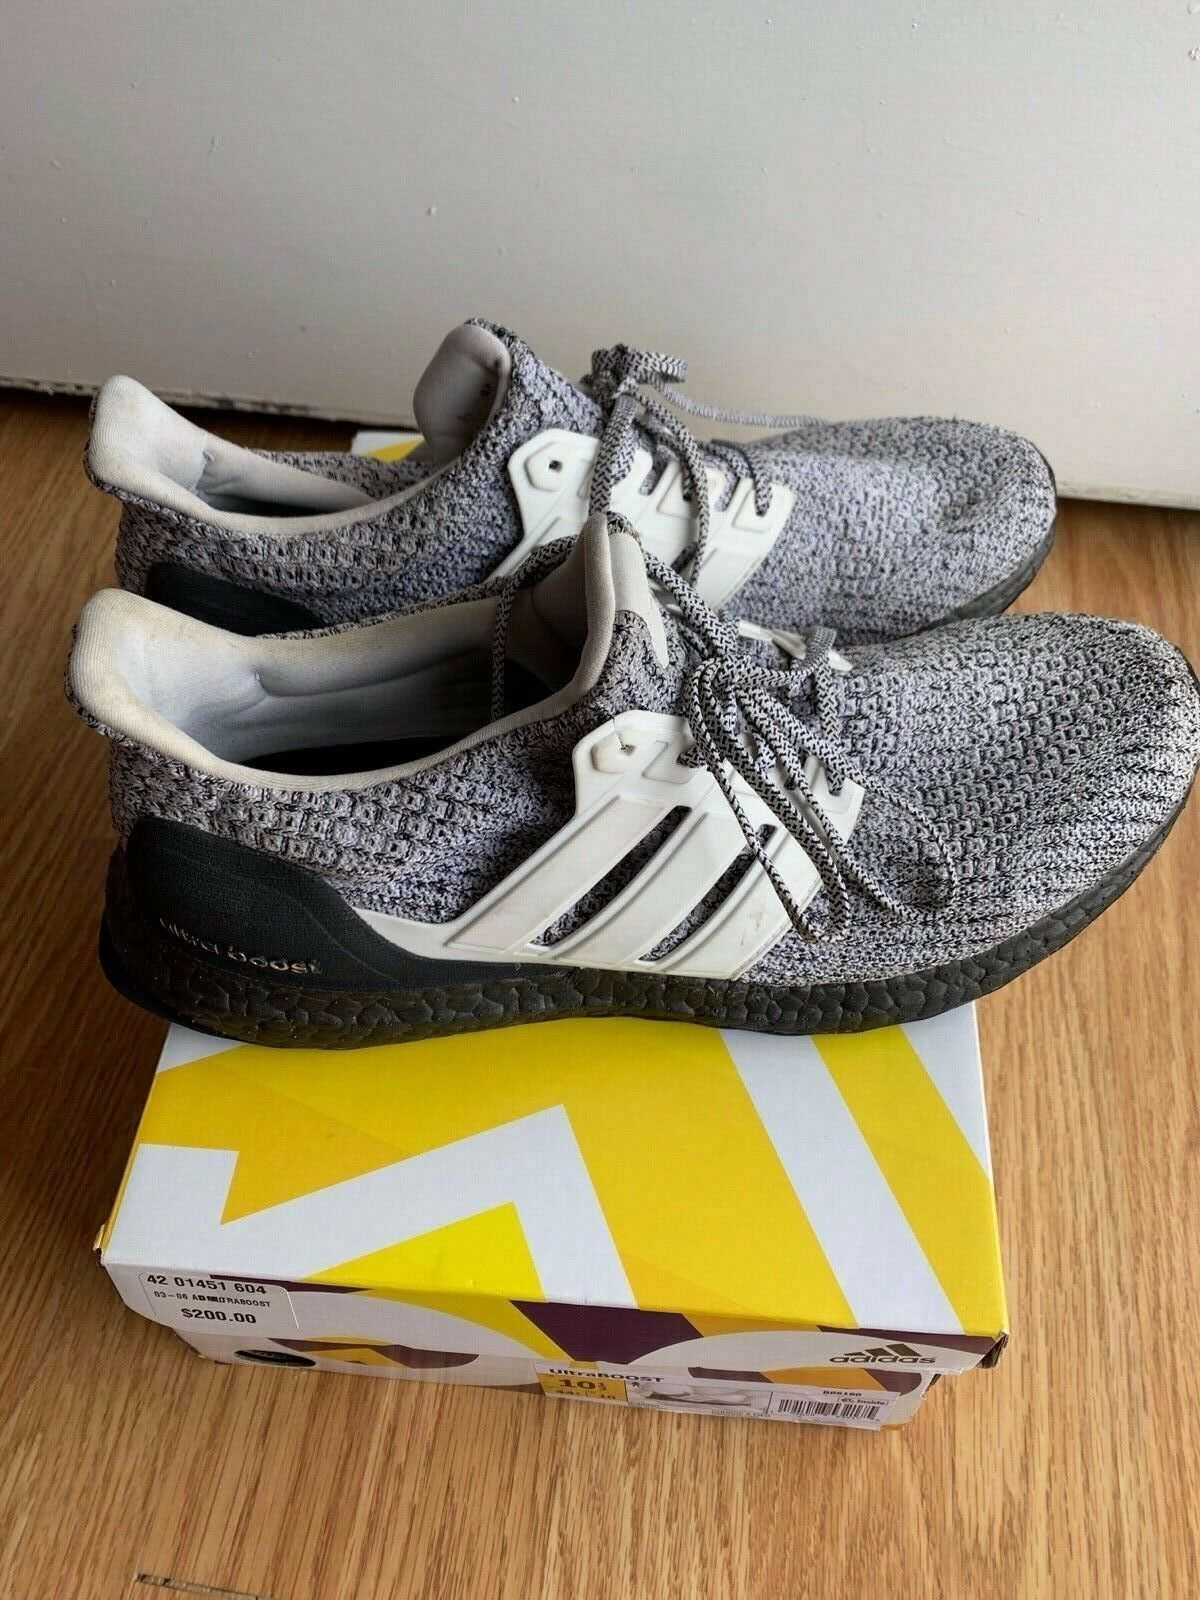 a8d5c075b4ab7 Adidas Ultra BOOST 4.0 Oreo BB6180 Cookies and Cream LTD Men s Size 10.5 US